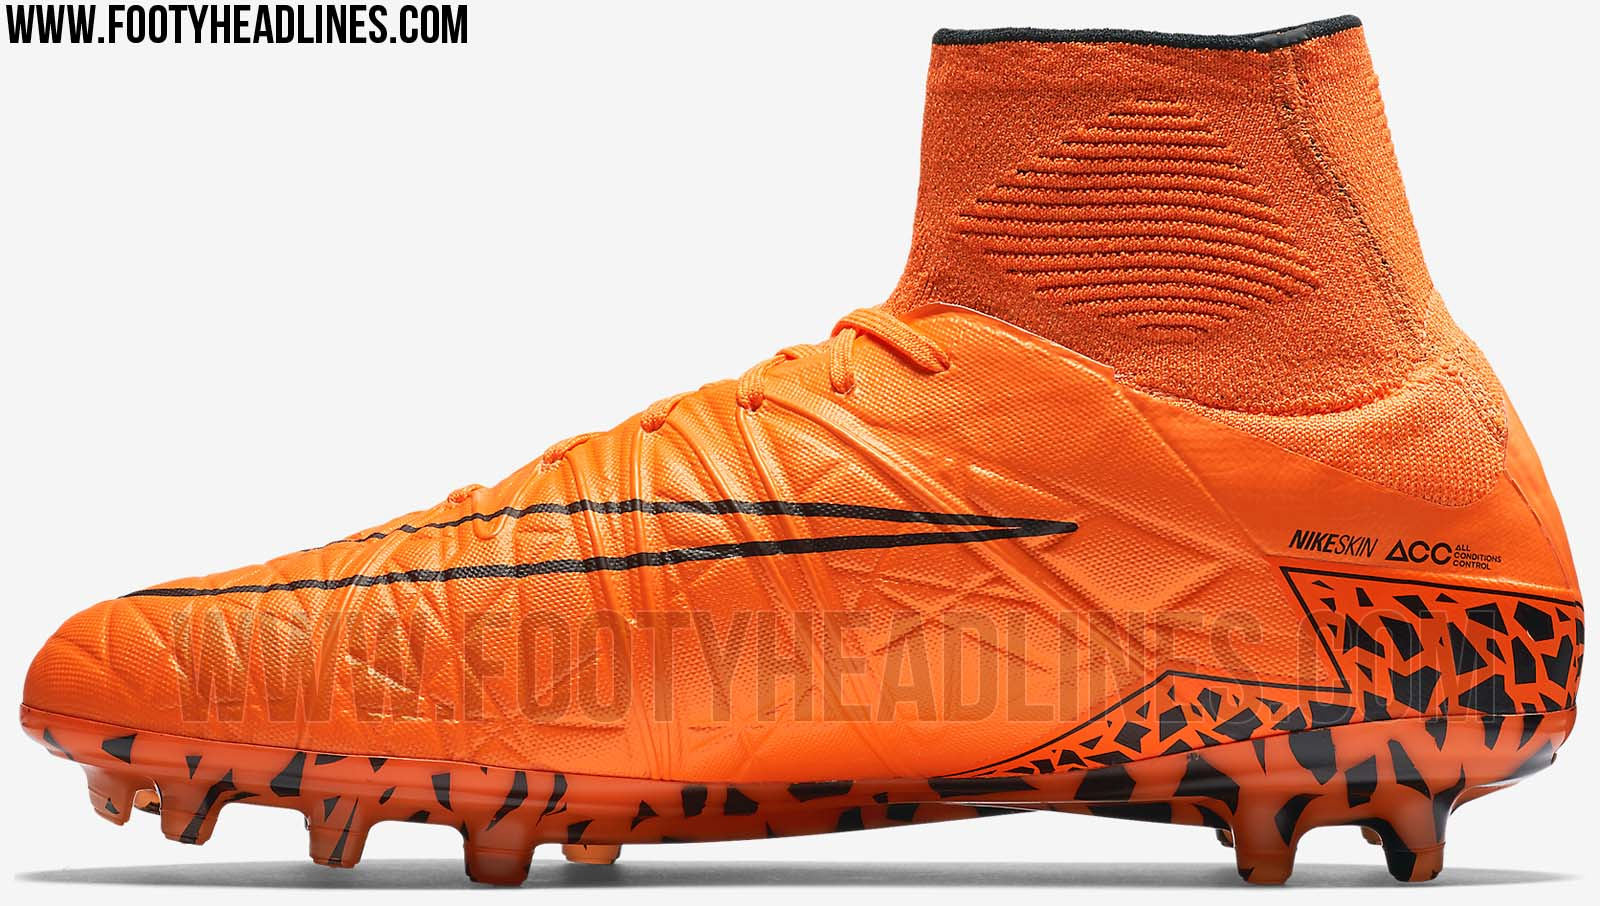 orange nike hypervenom 2 2015 boot released footy headlines. Black Bedroom Furniture Sets. Home Design Ideas